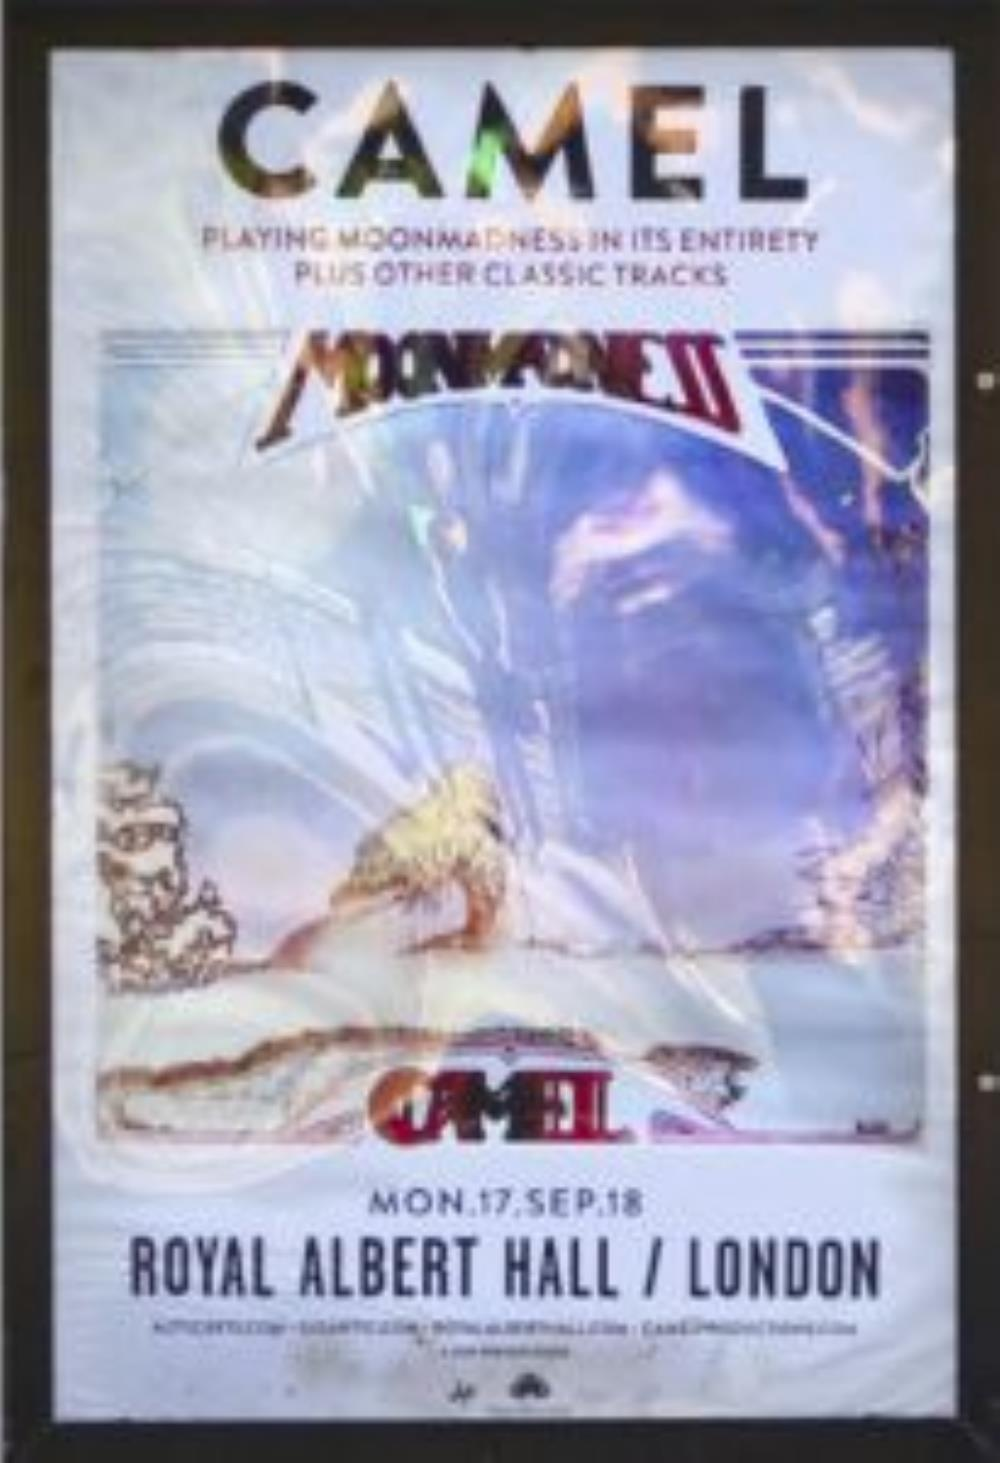 At The Royal Albert Hall by CAMEL album cover